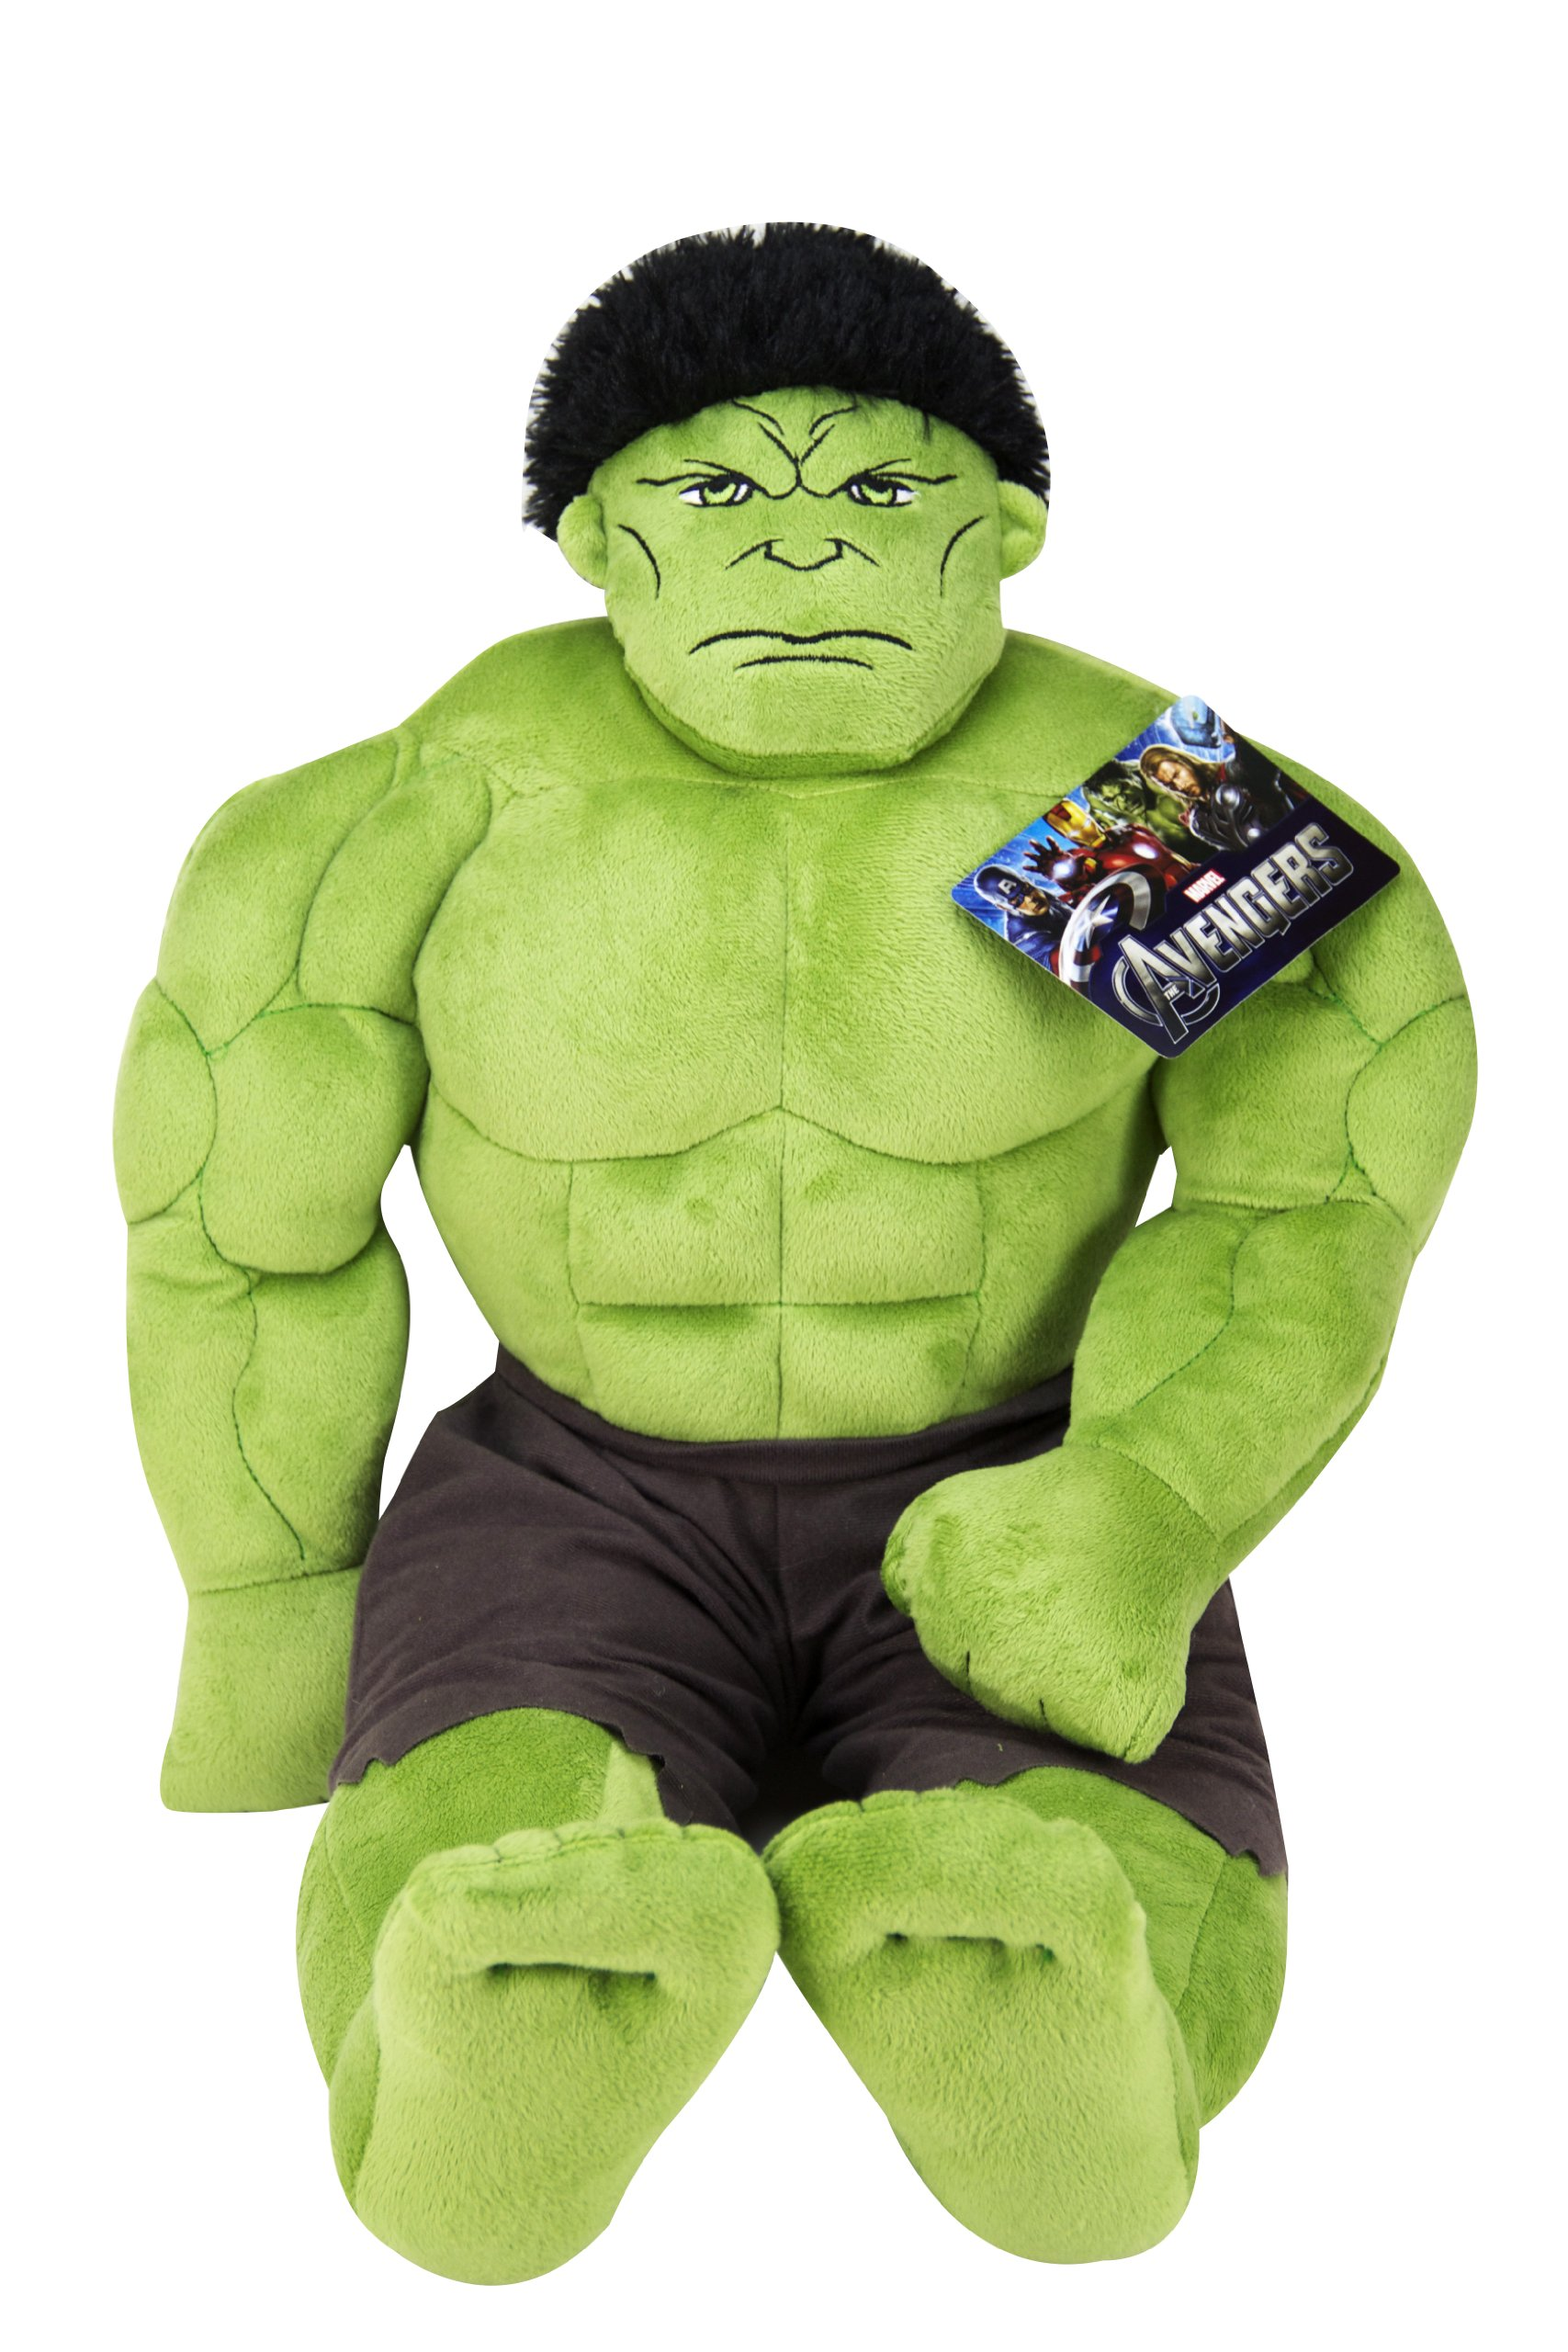 Jay Franco Avengers Plush Stuffed Hulk Pillow Buddy – Super Soft Polyester Microfiber, 23 inch (Official Marvel Product)